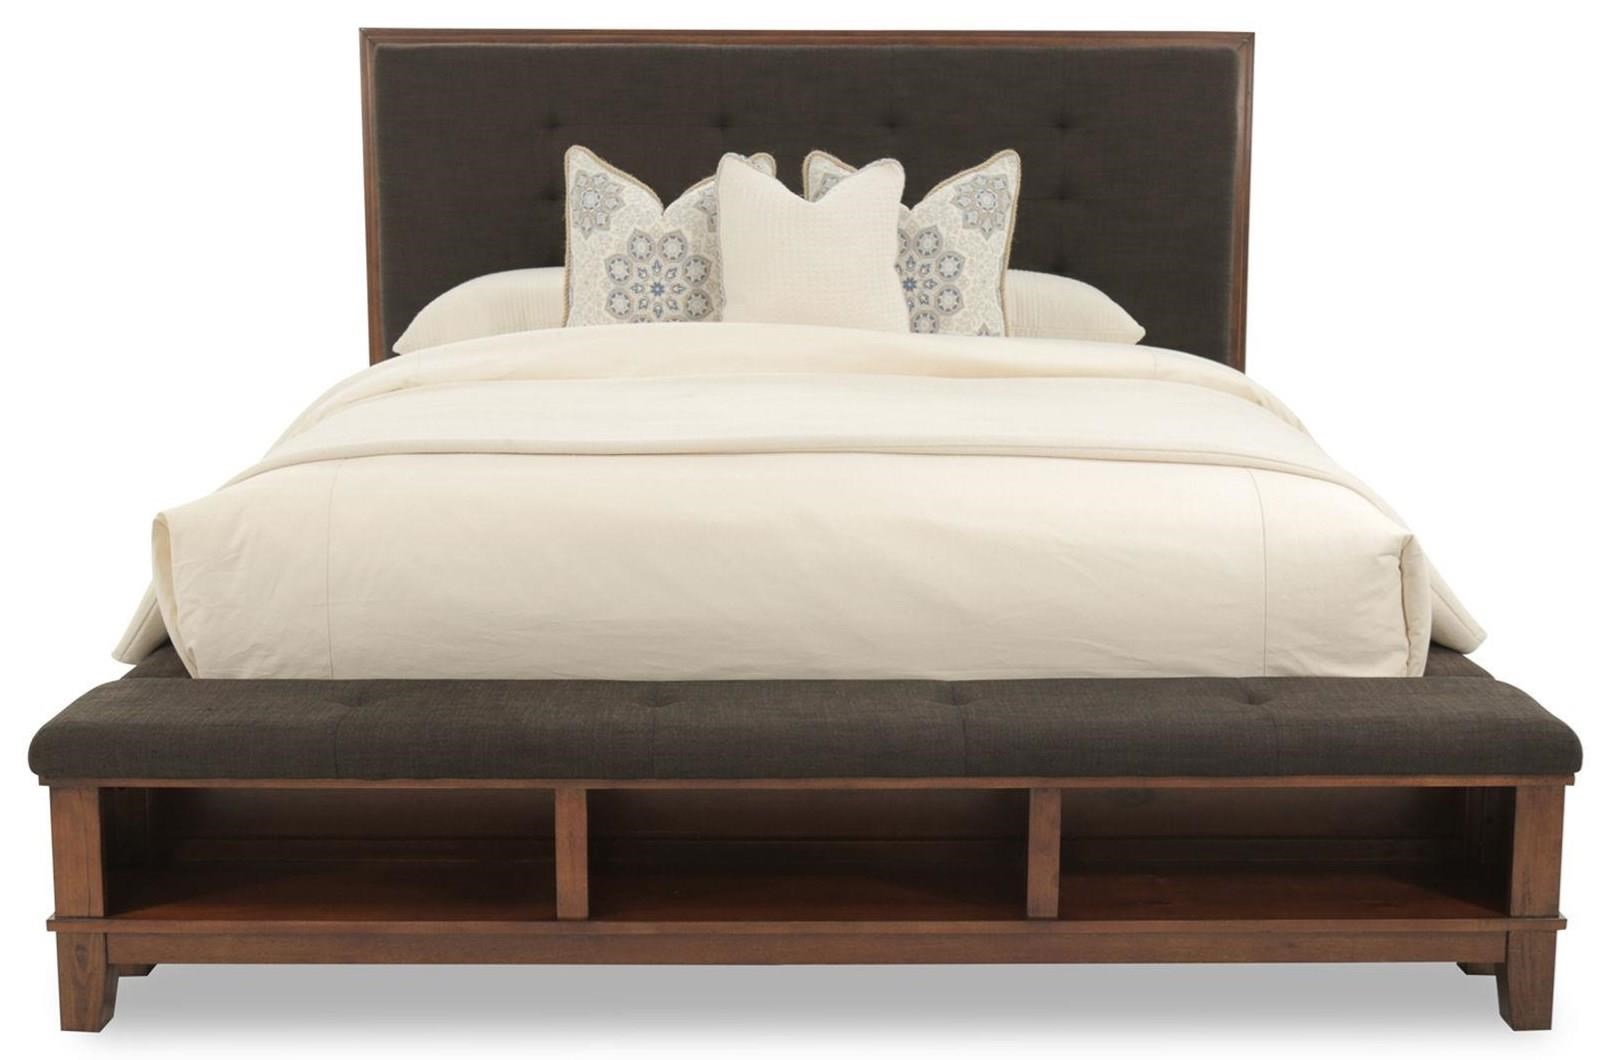 Cora Queen Bed at Ruby Gordon Home